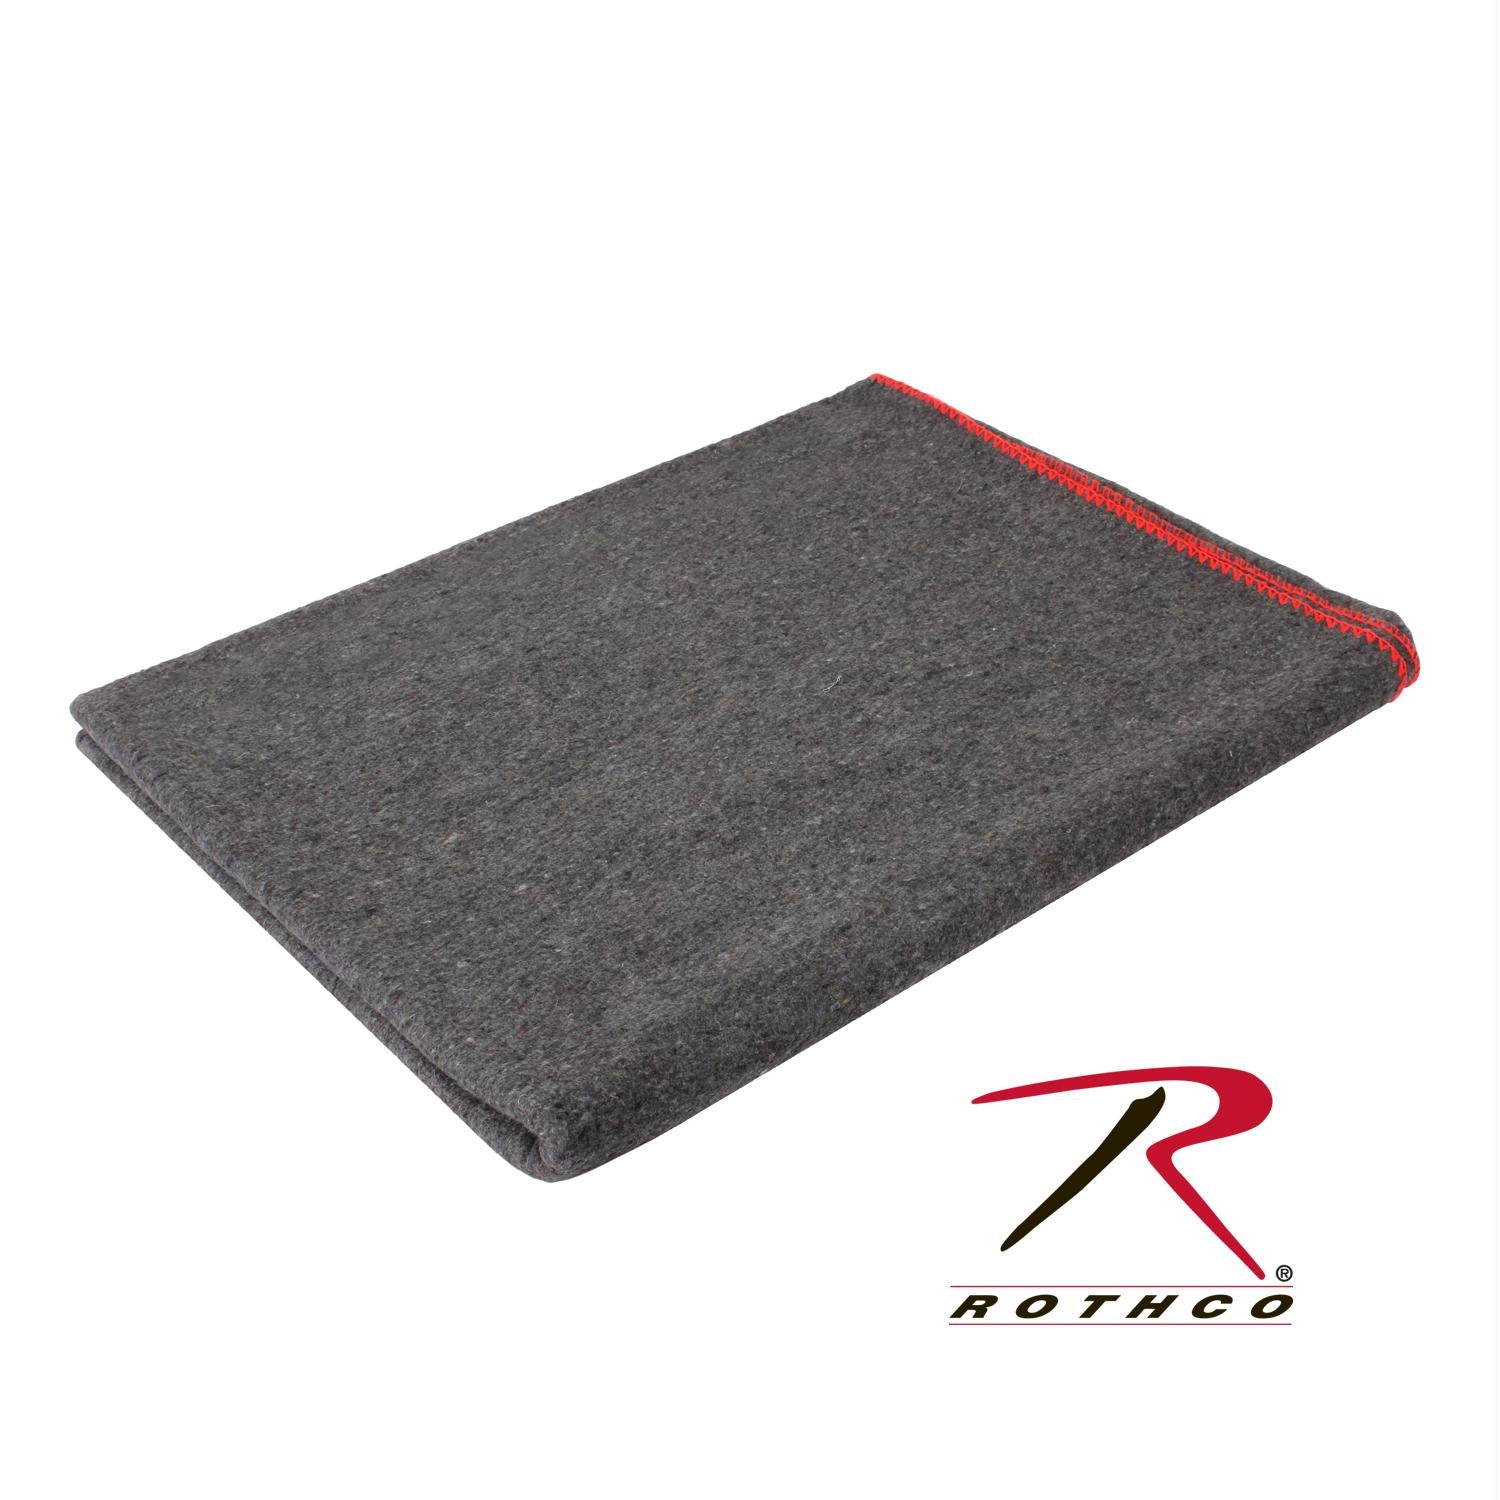 Rothco Rescue Survival Blanket - Grey / 60